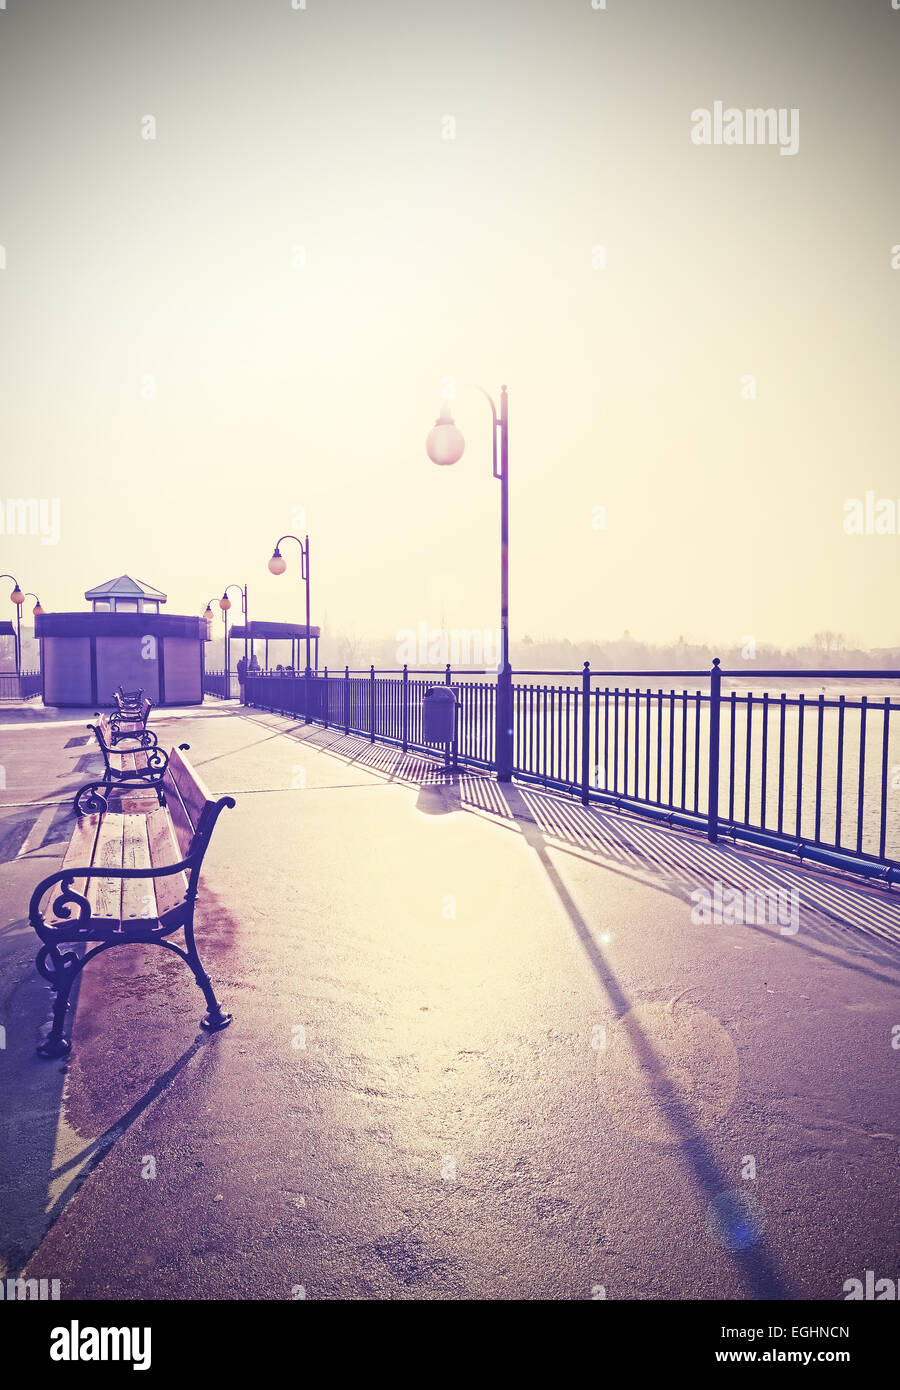 Retro vintage filtered nostalgic picture of promenade with lens flare. - Stock Image